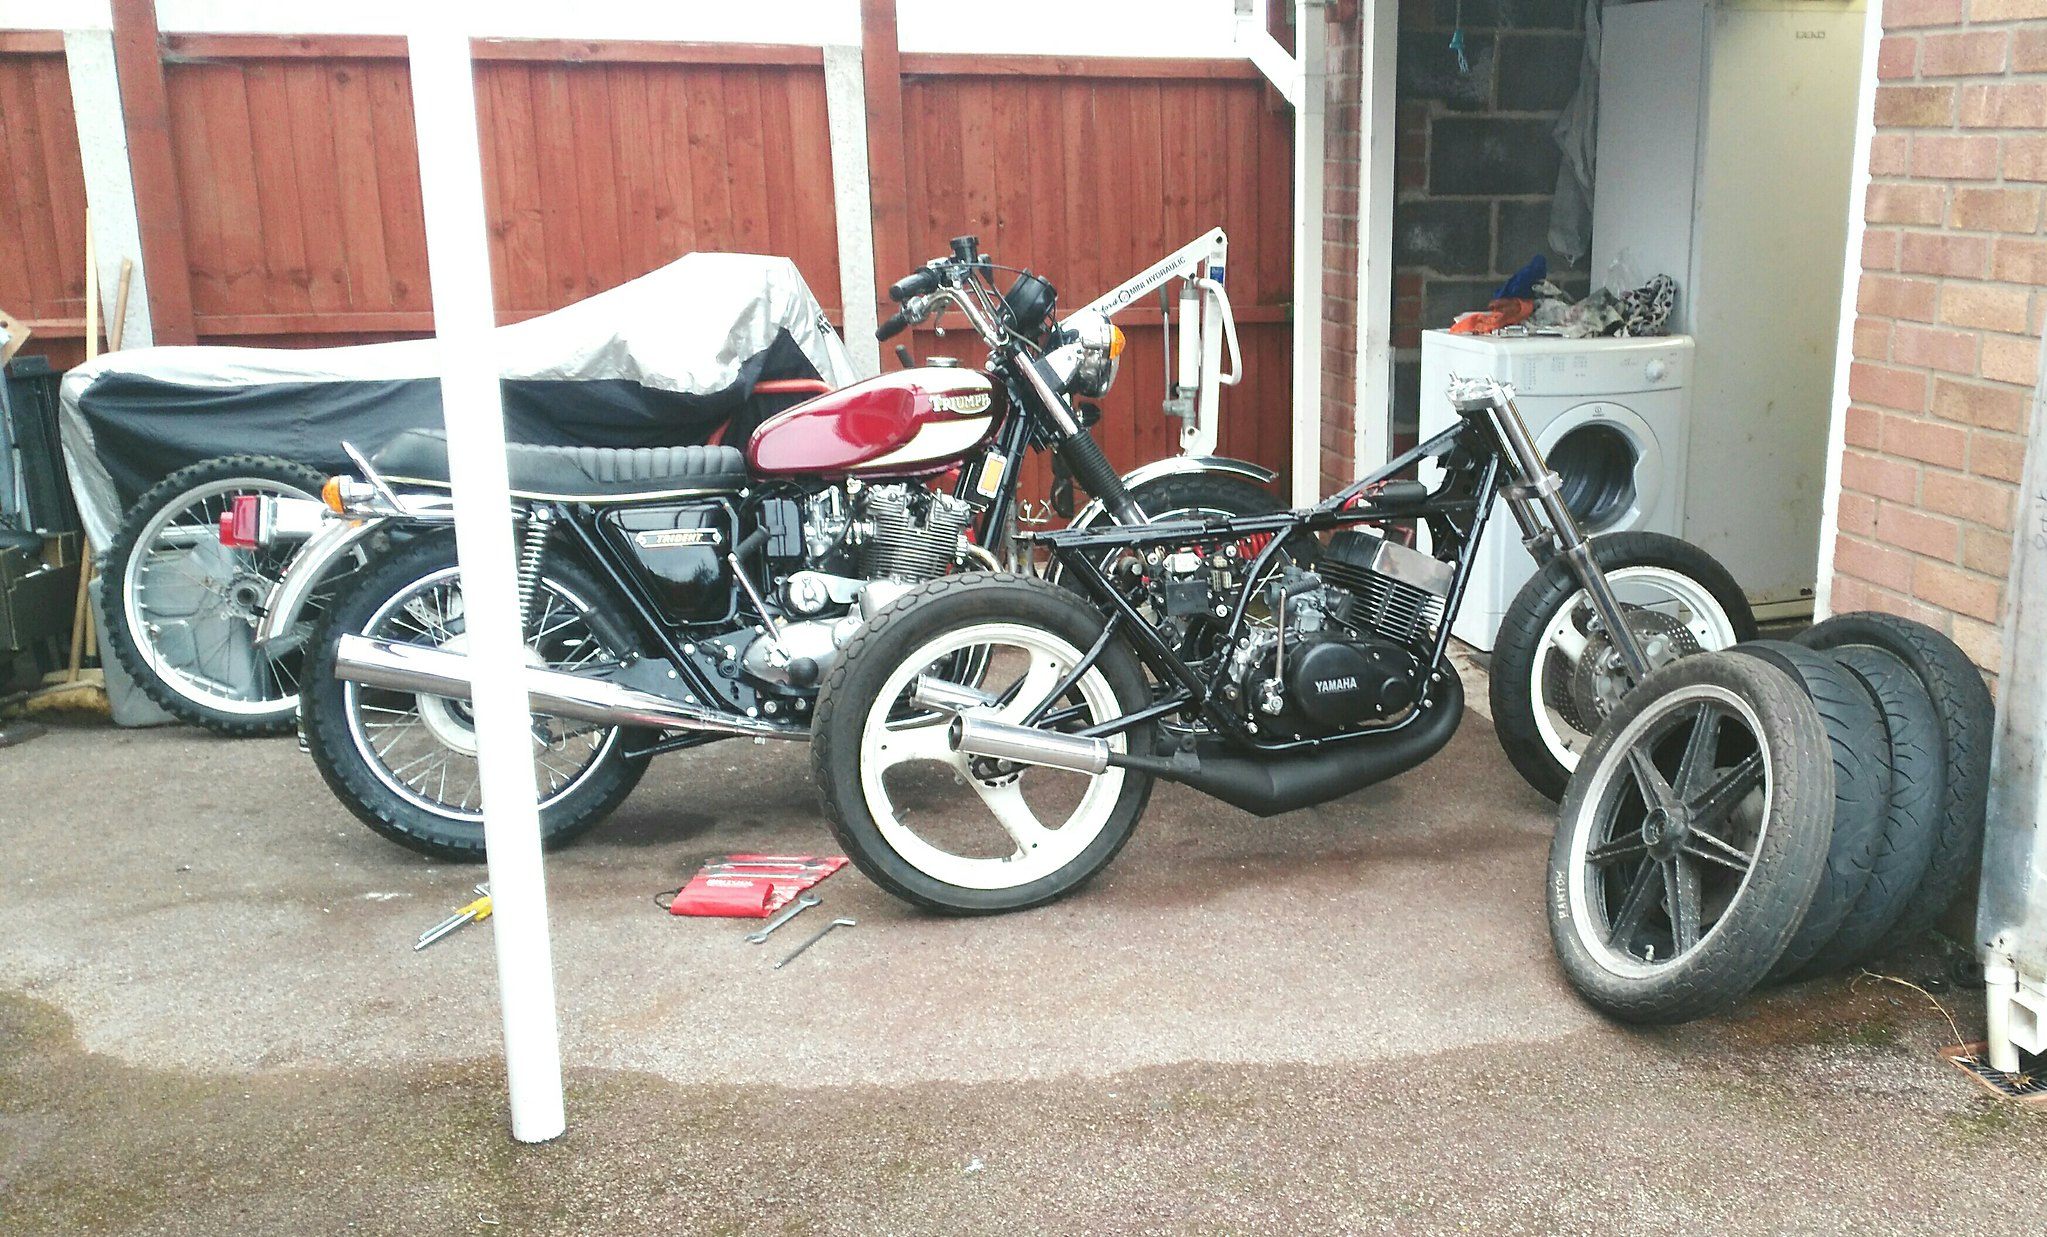 Getting busy now - YAMAHA XJR OWNERS CLUB